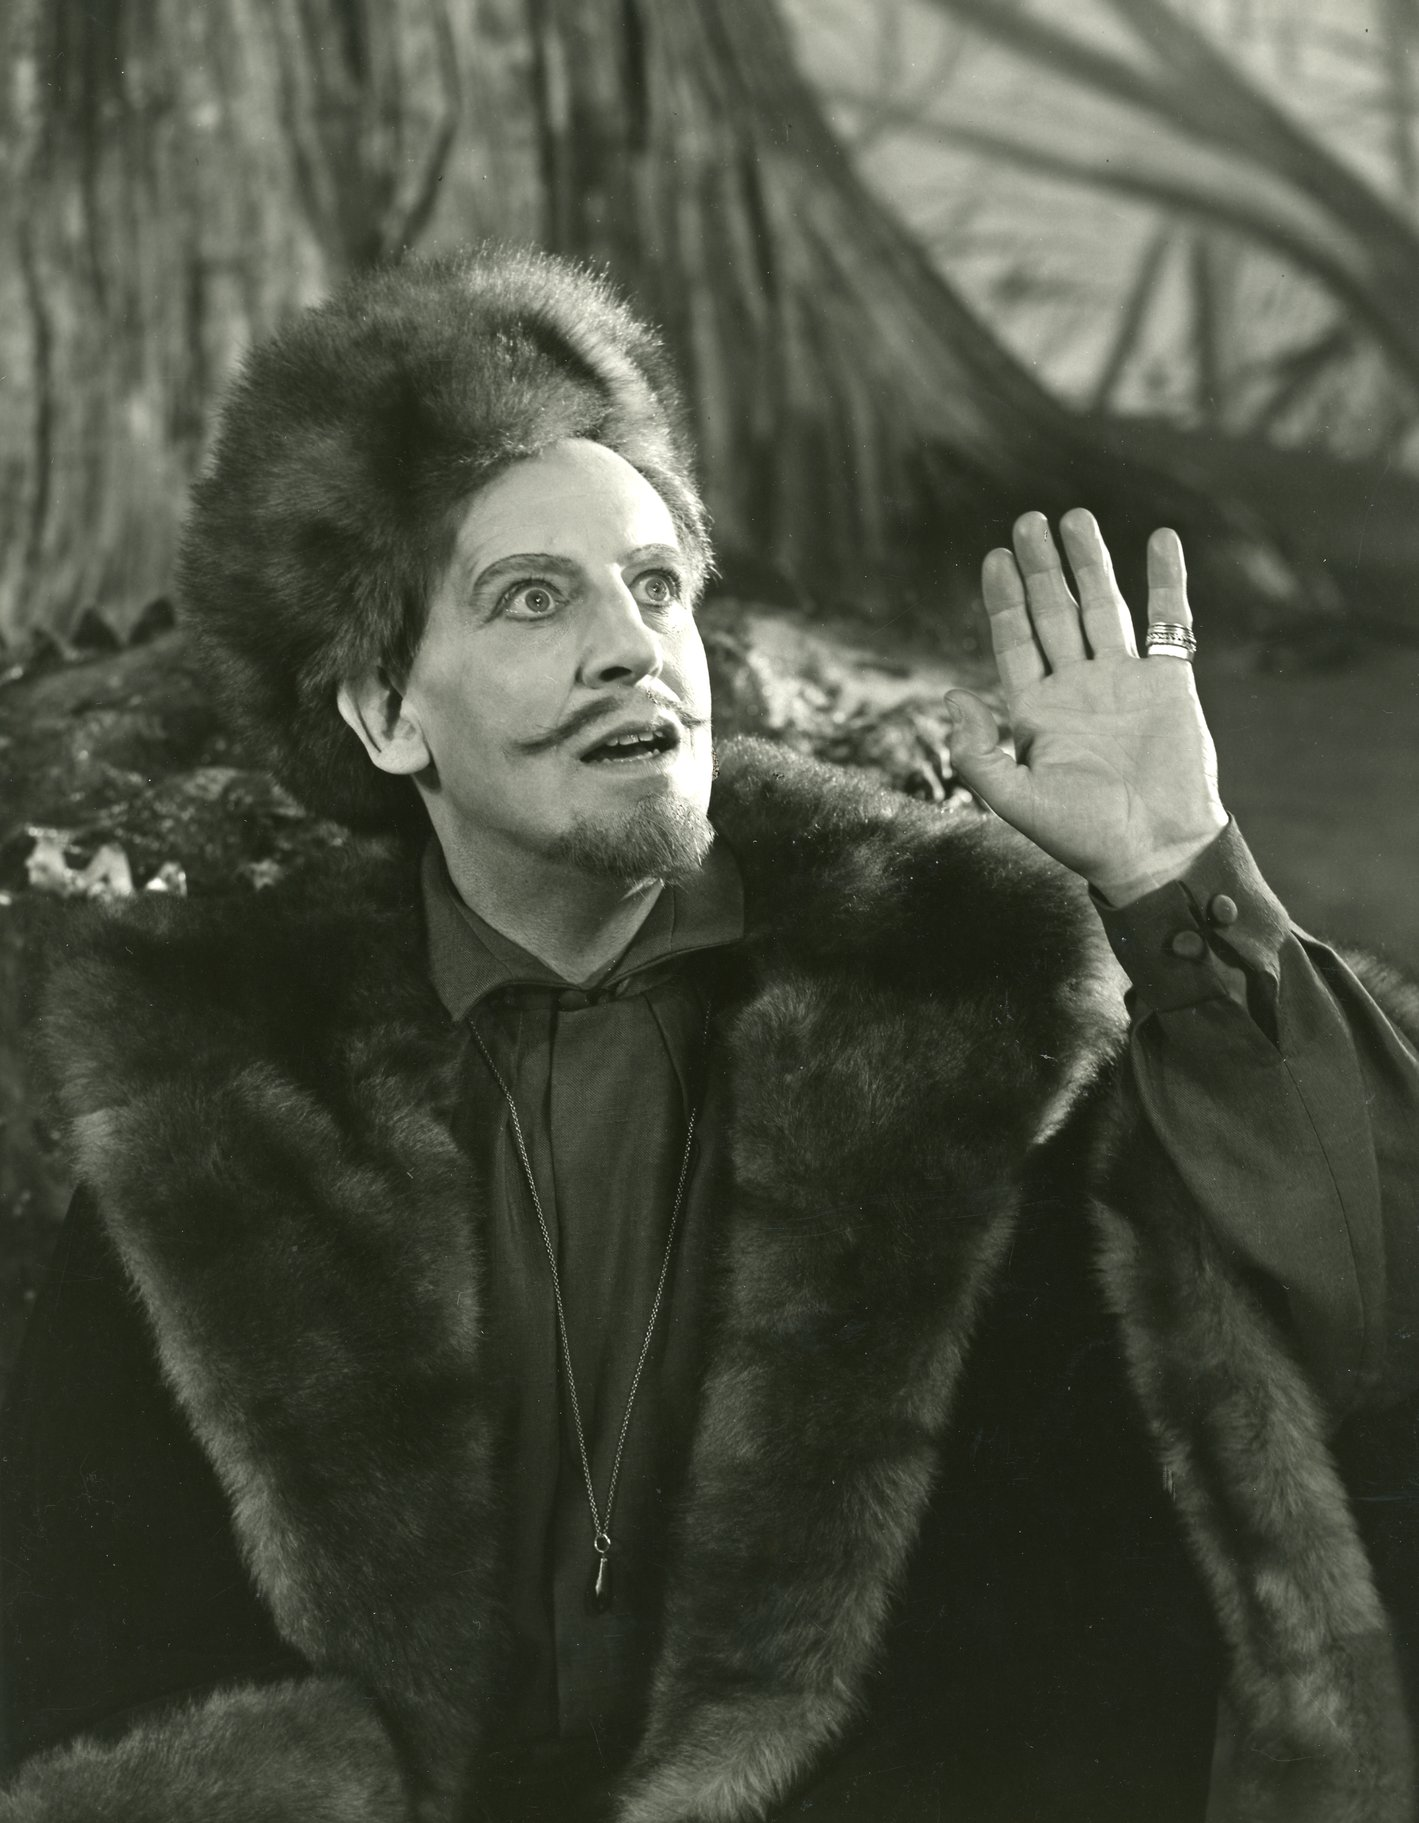 A man in furs with a long moustache.